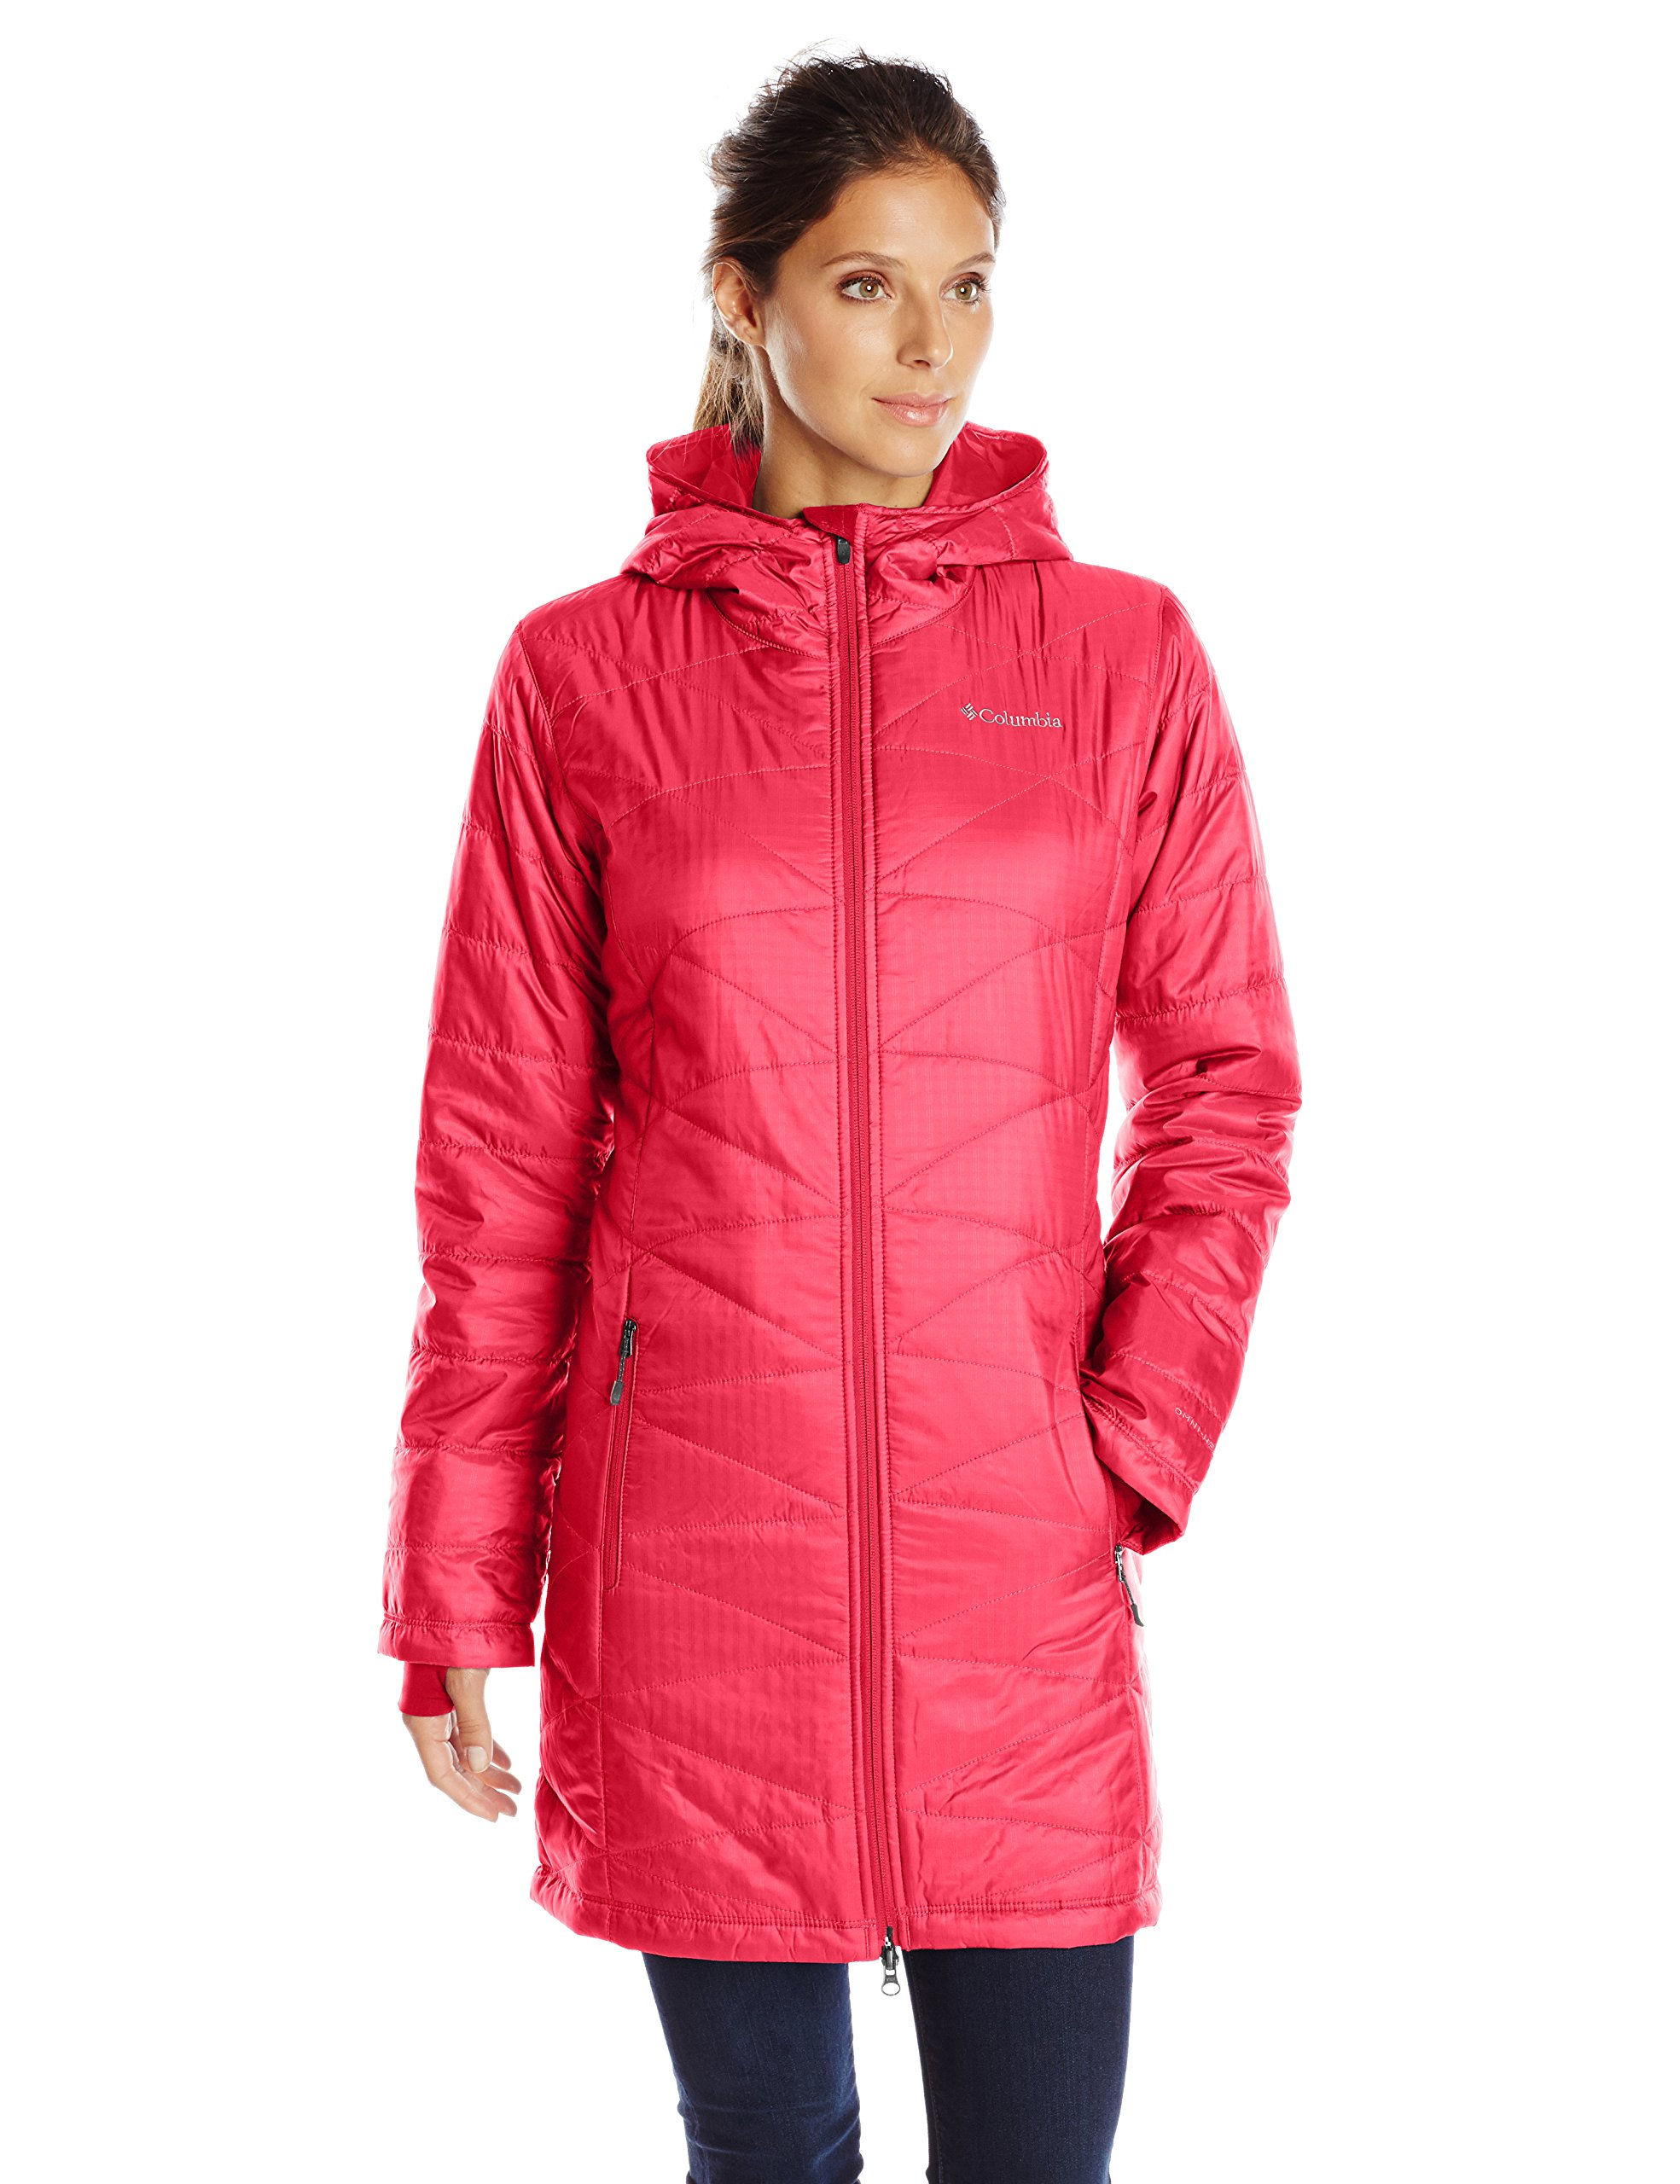 Columbia Women's Mighty Lite Hooded Jacket, Red Camellia, X-Large